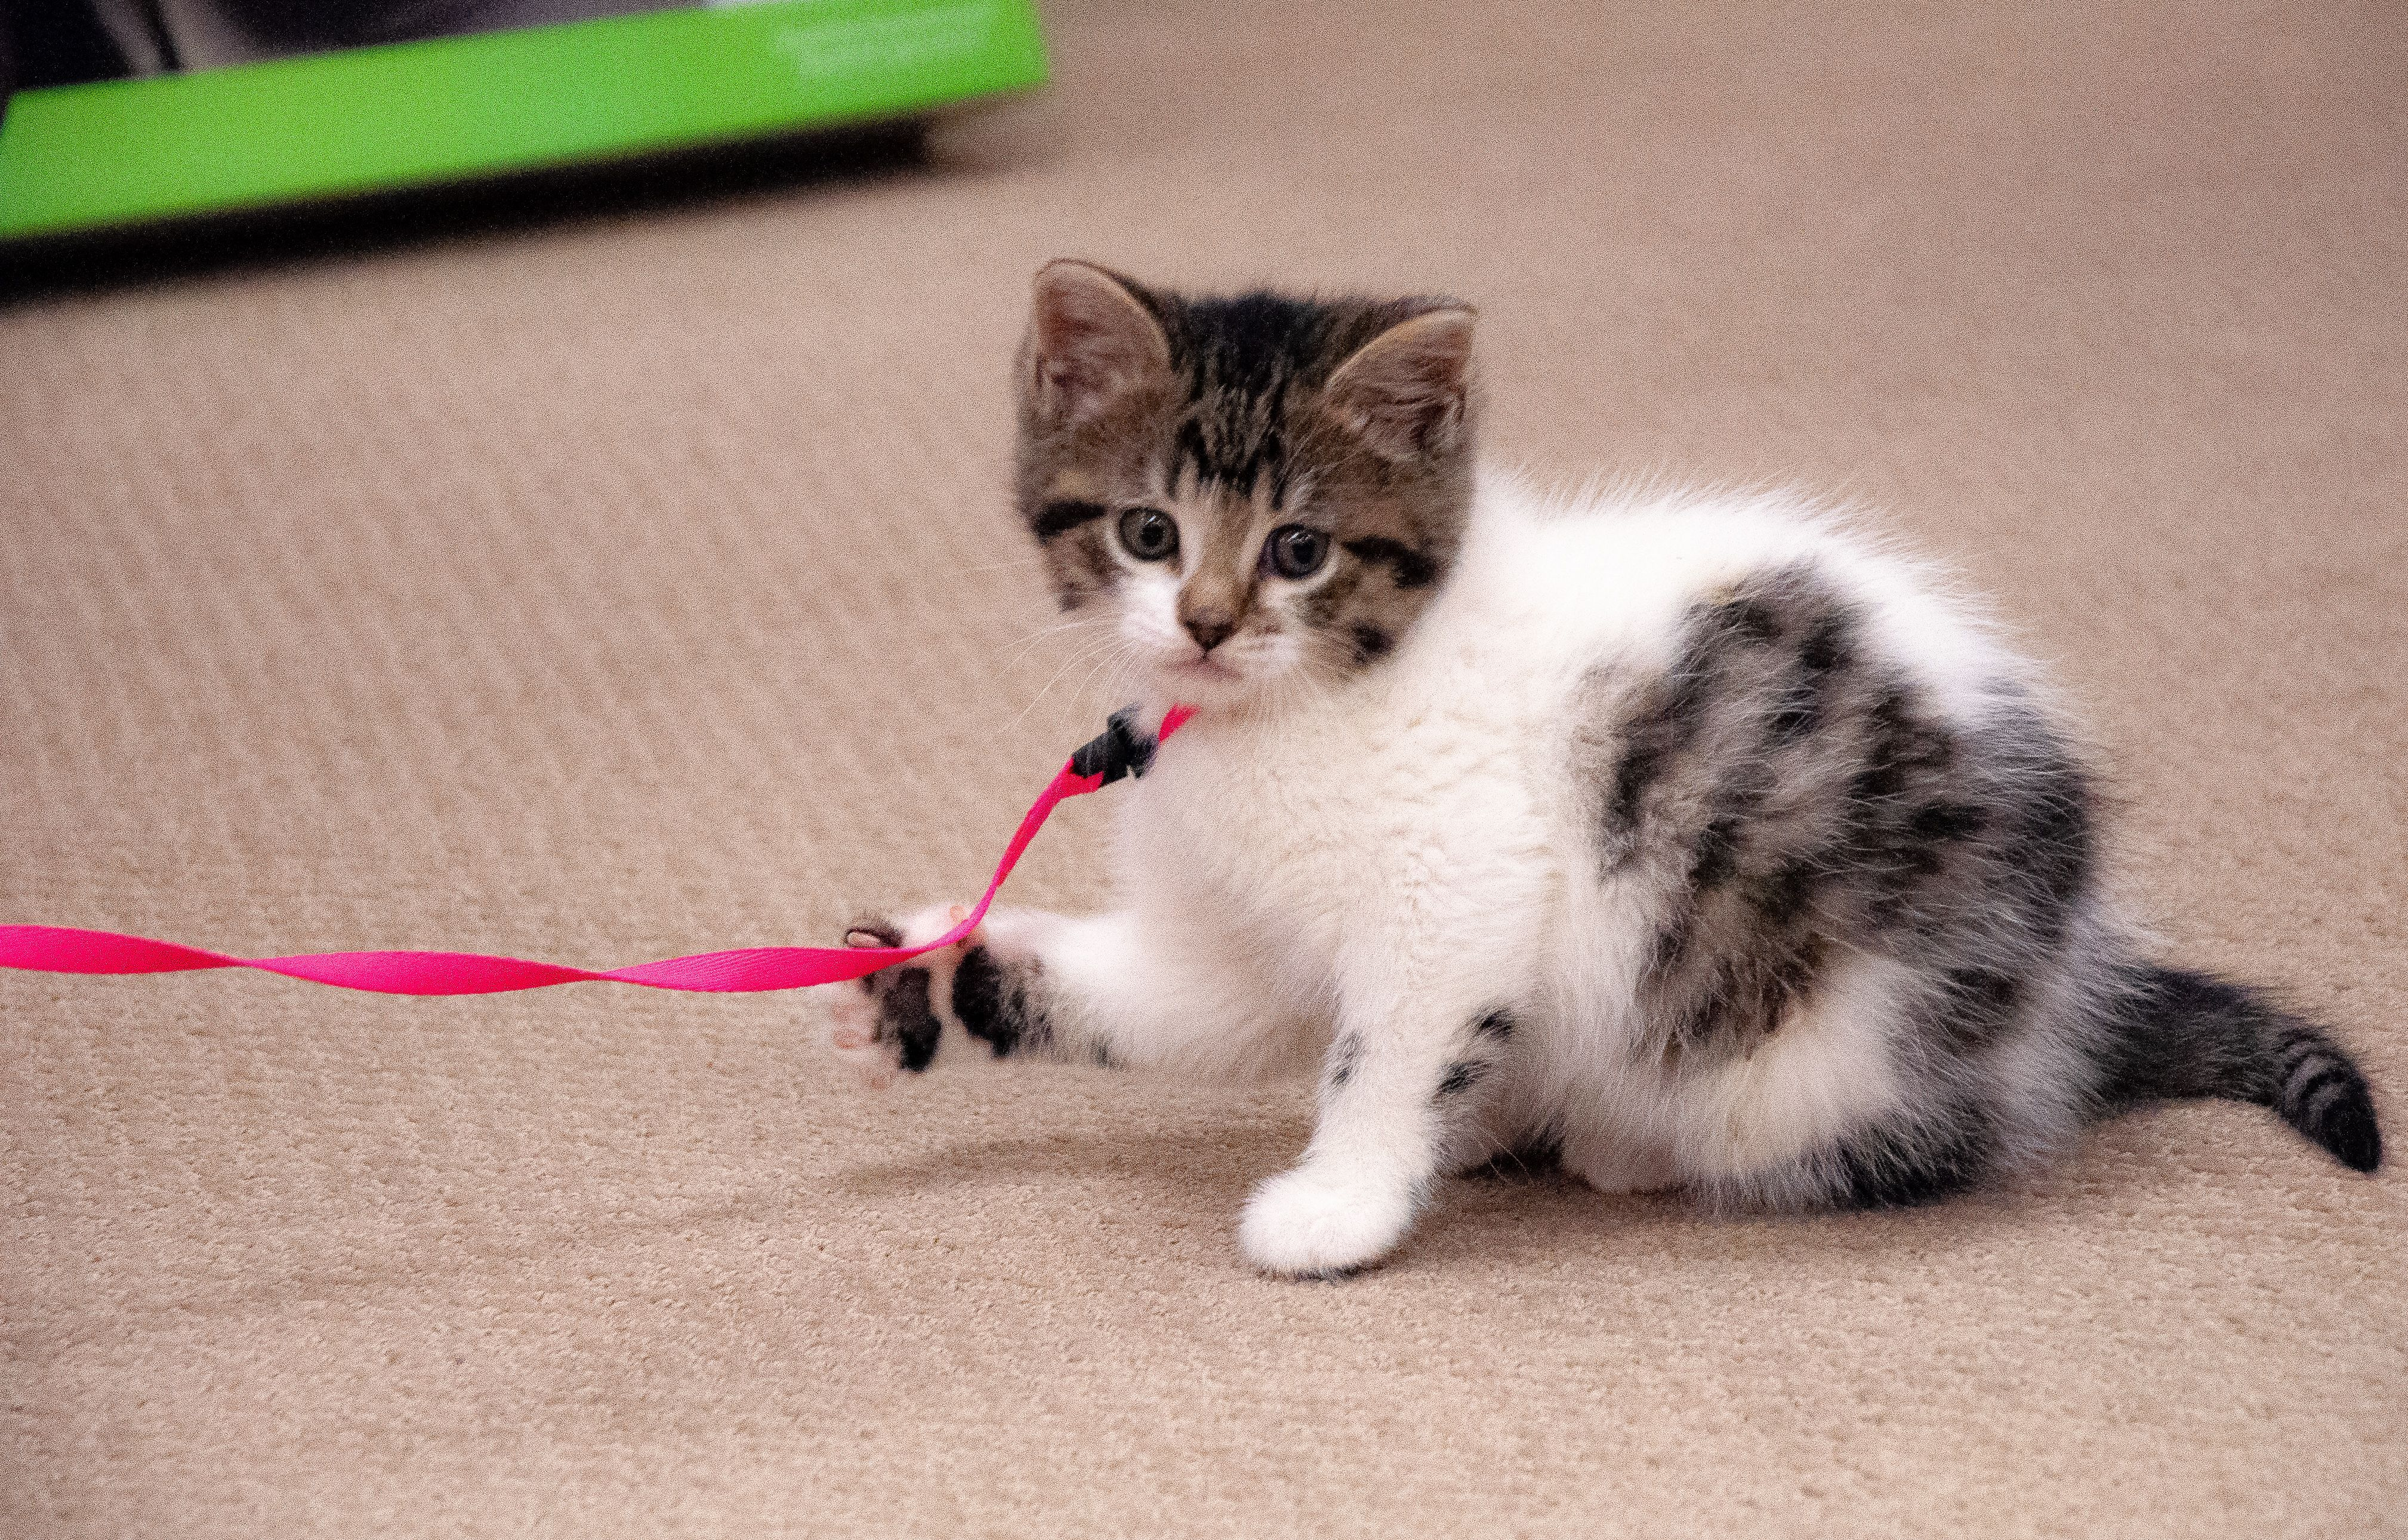 Tips For Bringing Home And Training A New Kitten Kitten Proofing Kitten Adoption Cat Training